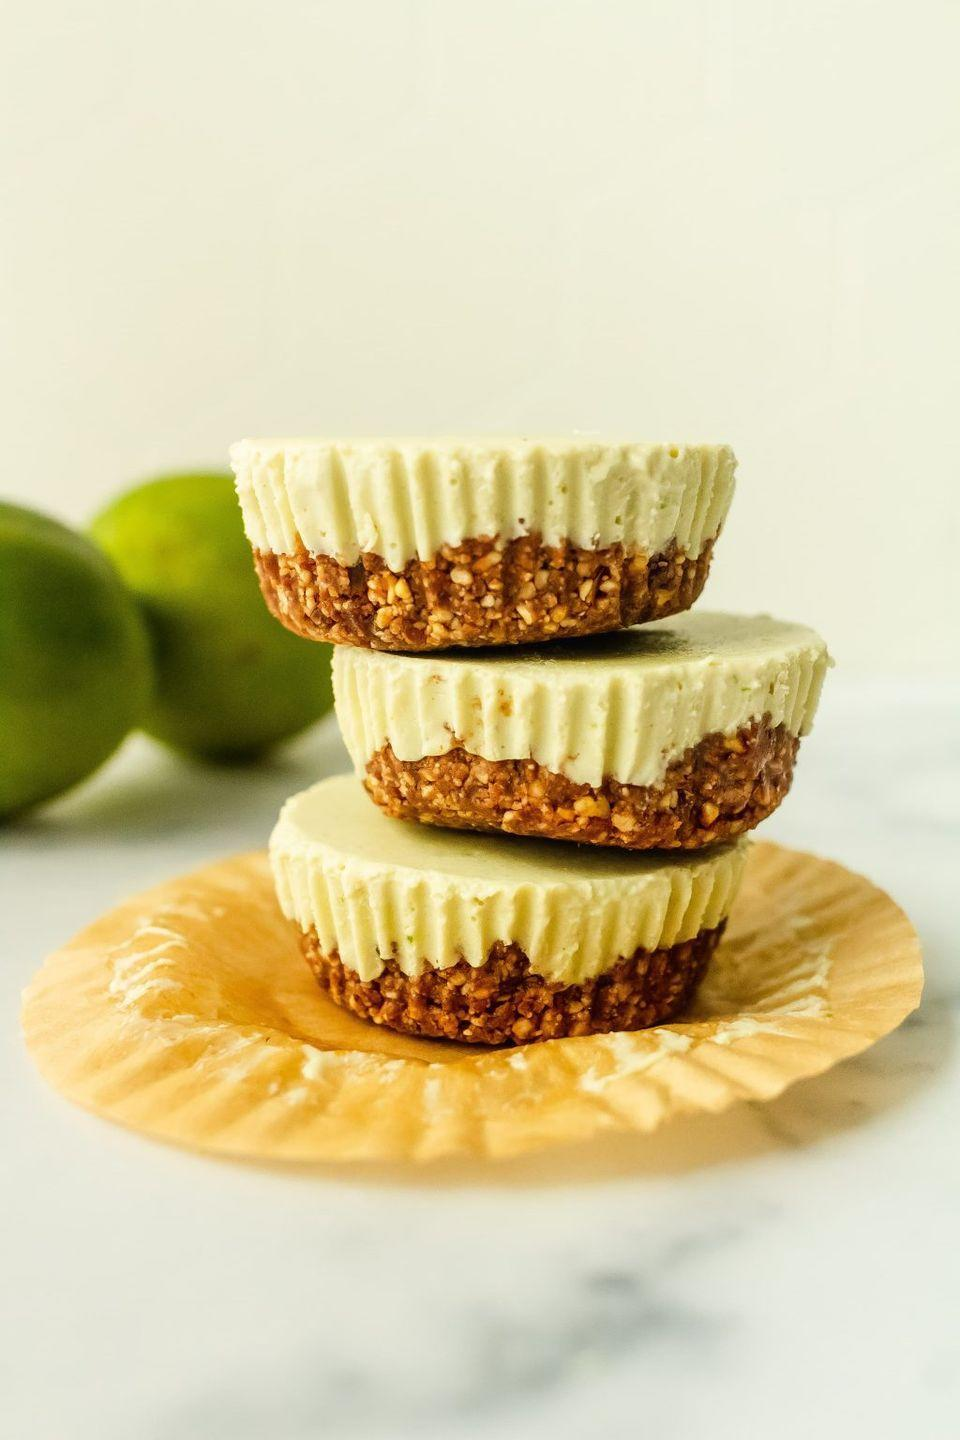 """<p>These little freezer cheesecakes have major tropical vibes and are made with healthy ingredients like dates, nuts, maple syrup, and yogurt. </p><p><a class=""""link rapid-noclick-resp"""" href=""""https://www.onceuponapumpkinrd.com/no-bake-key-lime-pie-cheesecakes/"""" rel=""""nofollow noopener"""" target=""""_blank"""" data-ylk=""""slk:GET THE RECIPE"""">GET THE RECIPE</a></p><p><em>Per serving: 199 calories, 14 g fat, 14 g carbs, 110 mg sodium, 7.5 g sugar, 3 g fiber, 5.7 g protein</em></p>"""